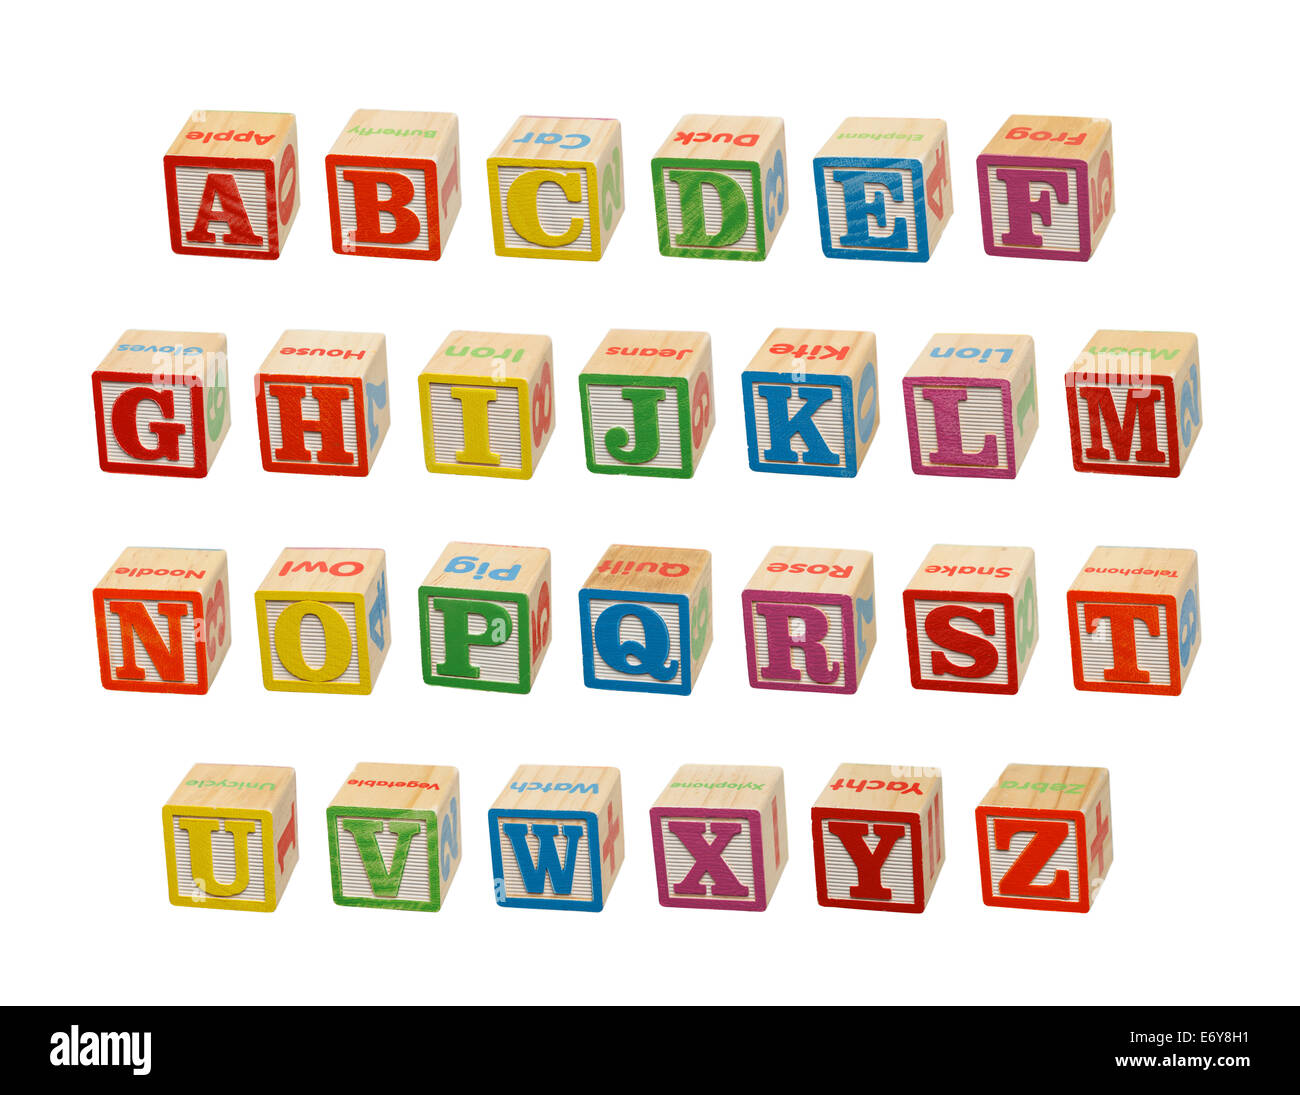 colored letter blocks stock photos colored letter blocks stock